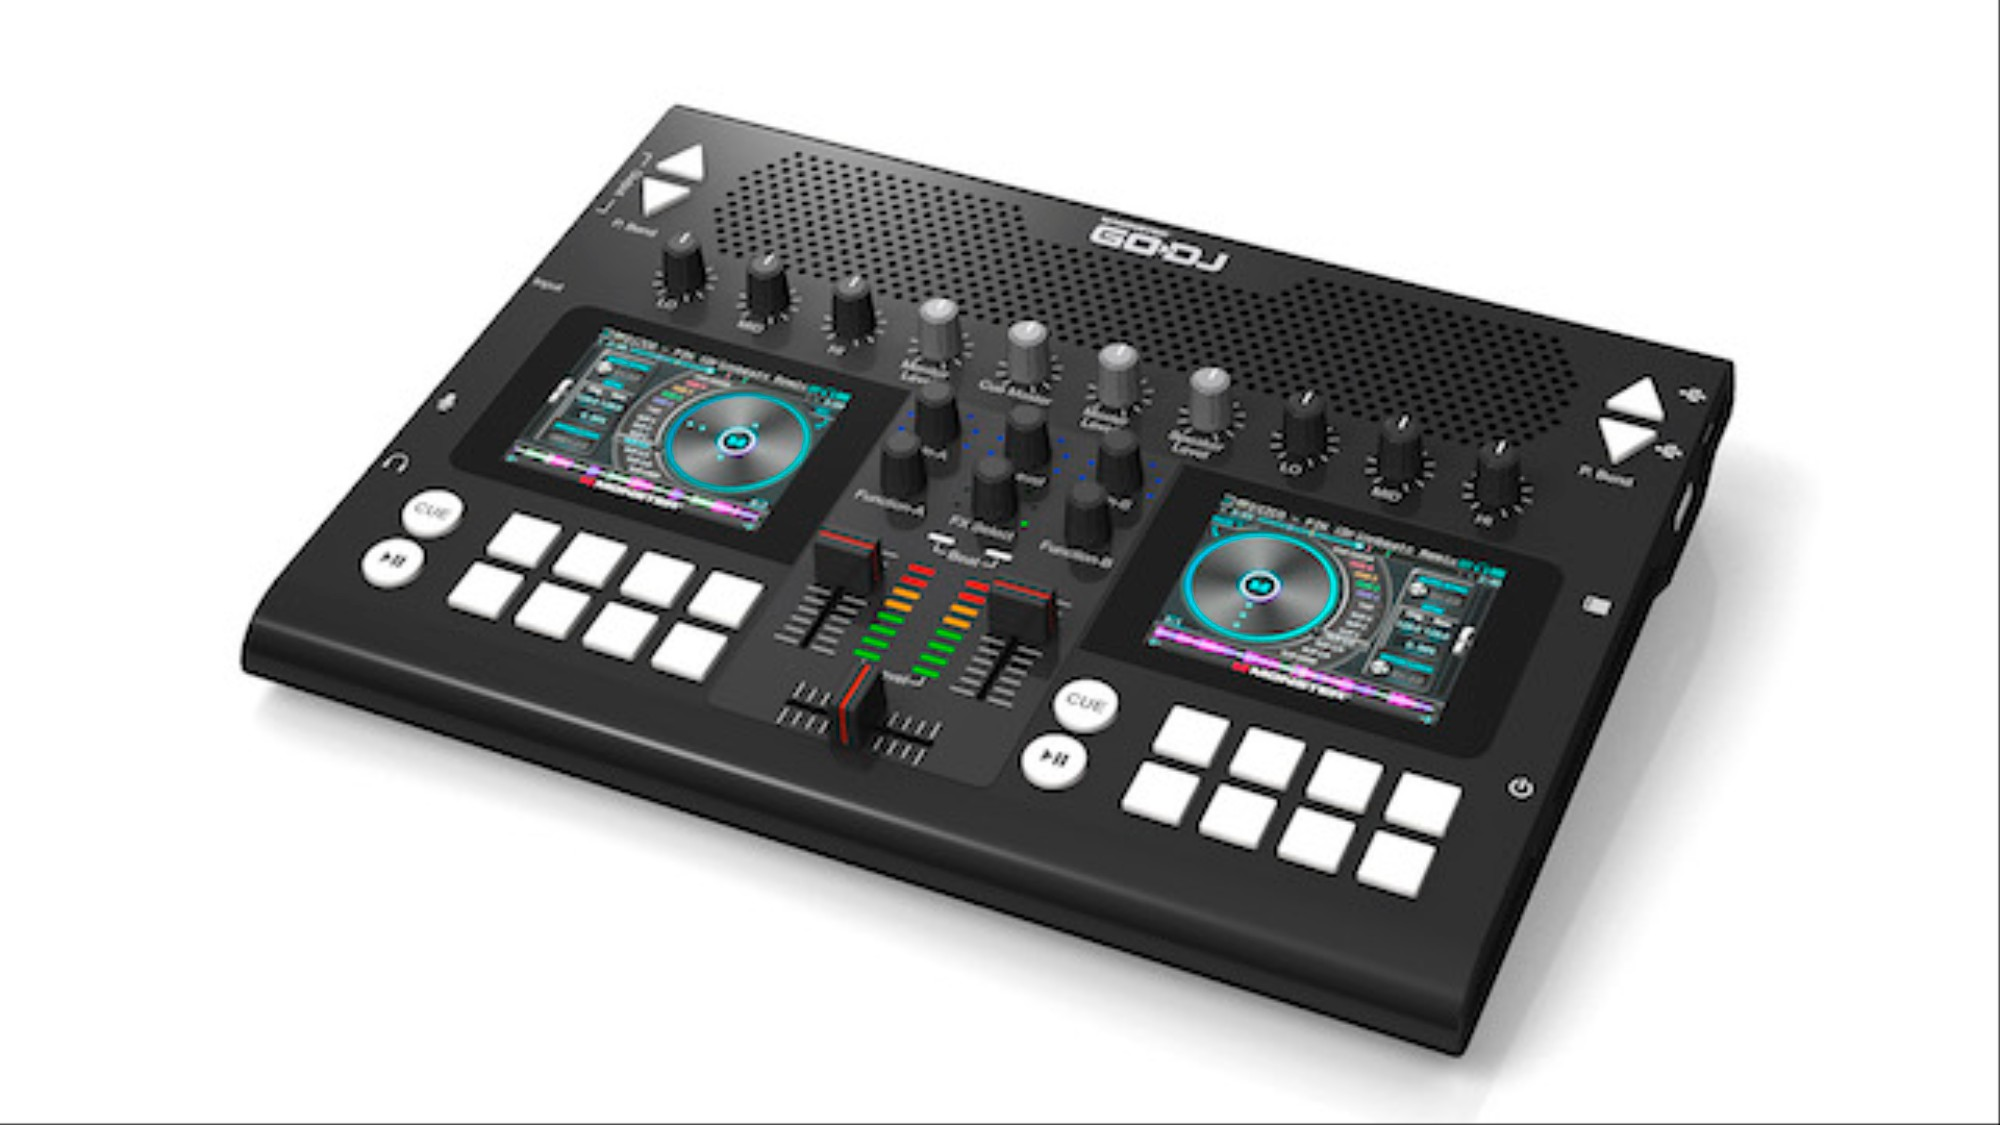 Finally, the Portable DJ Mixer with Everything - VICE